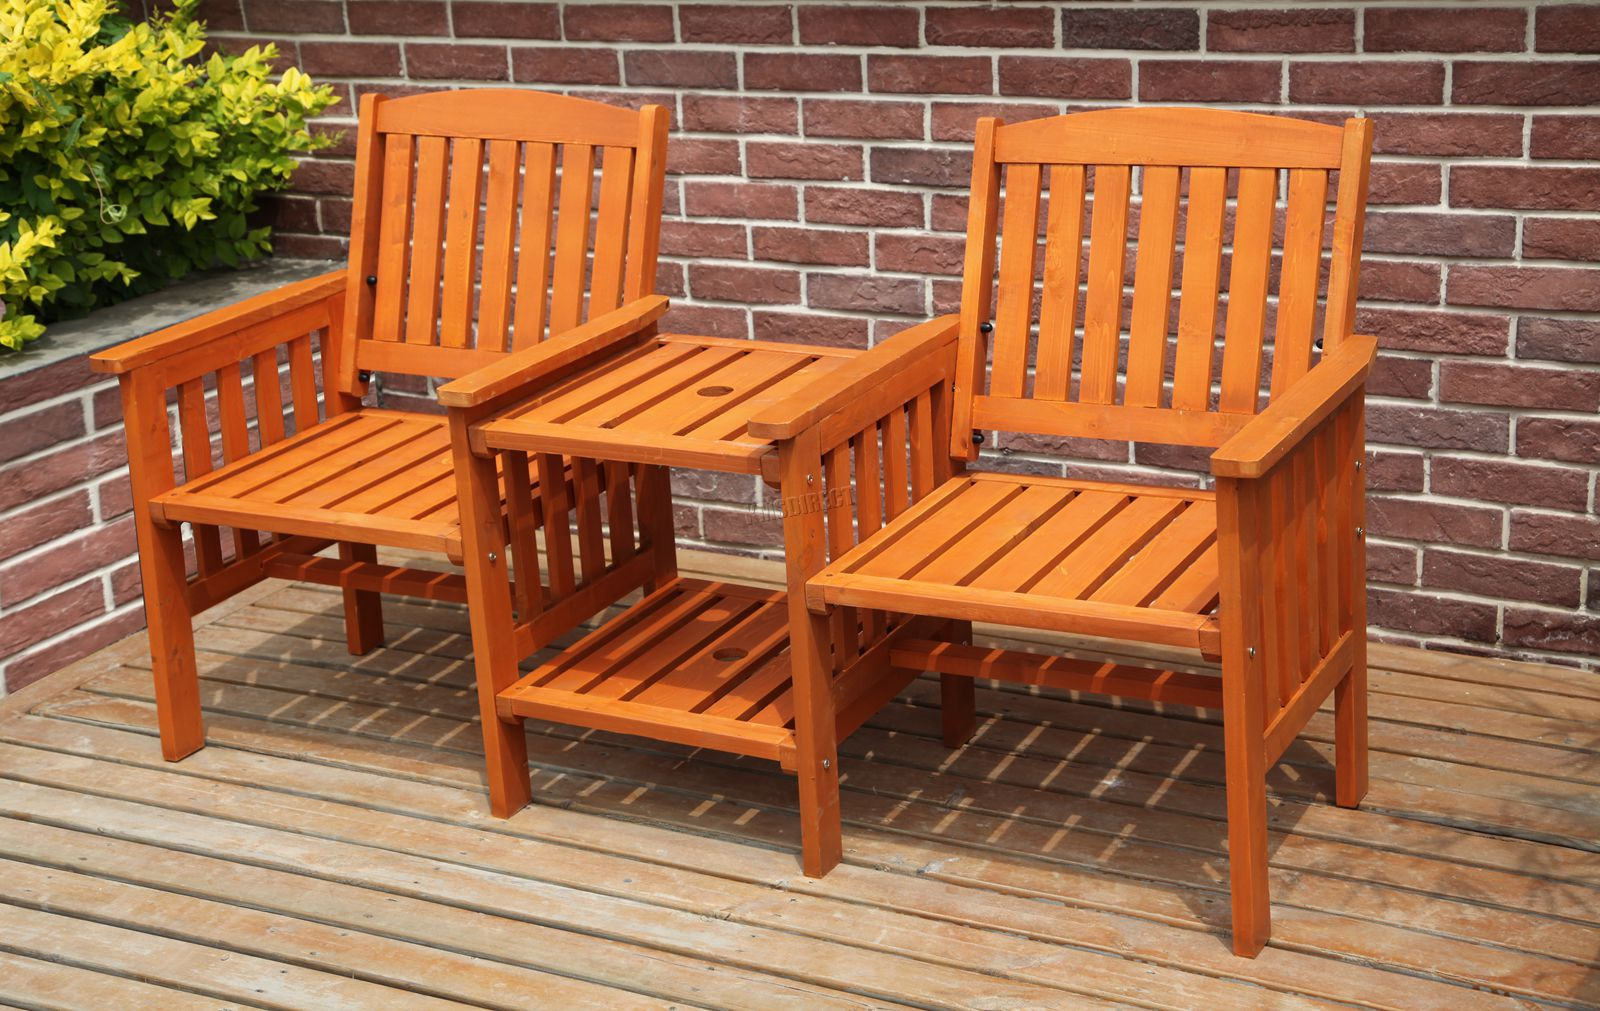 Details about BIRCHTREE Garden Love Seat Wooden Bench 12 Seater Patio Twin  Chair W/ Table LS012